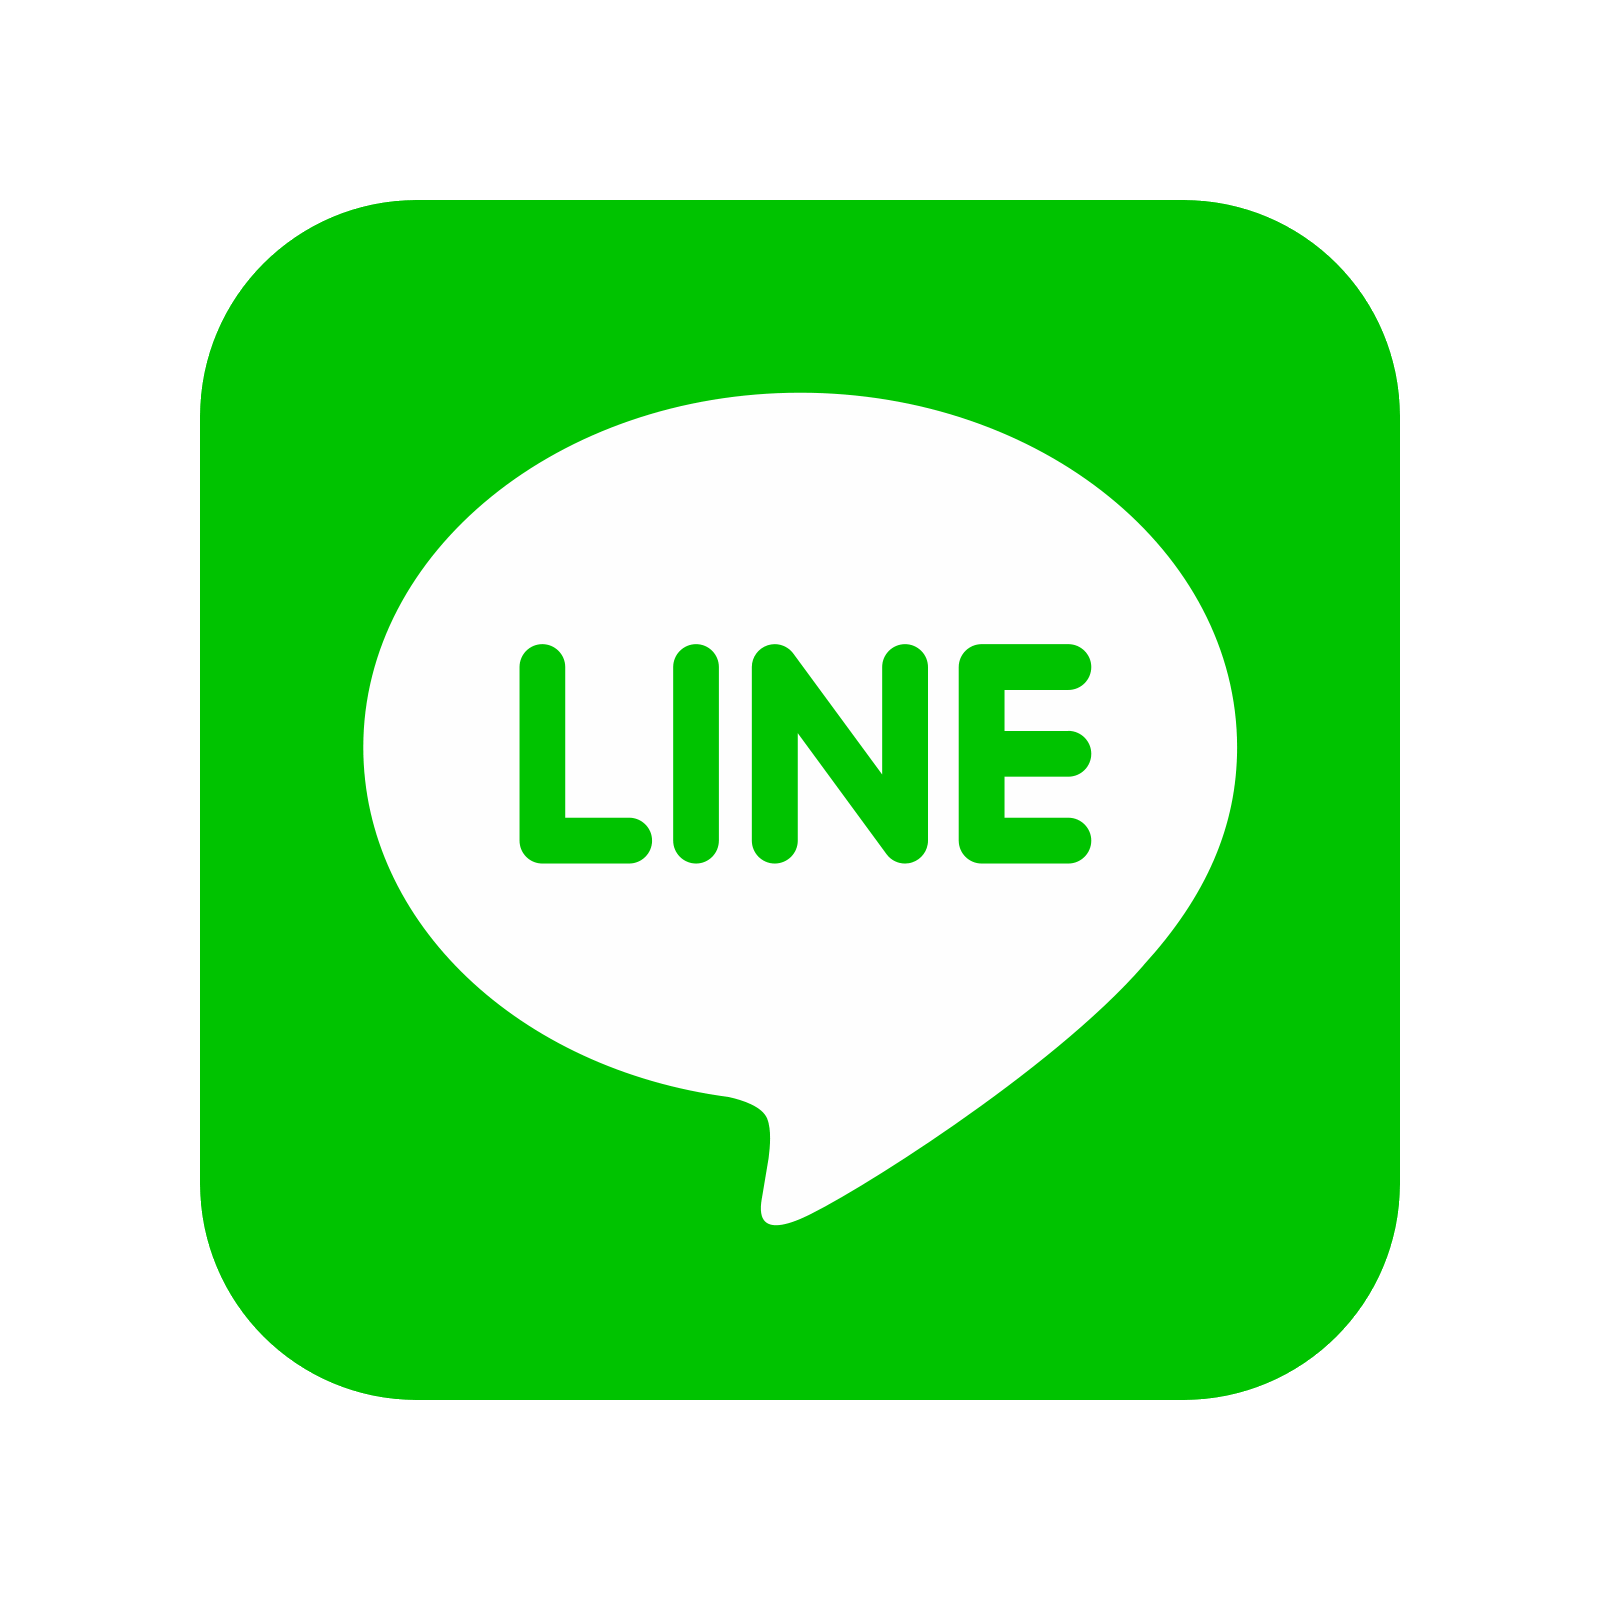 Line png. Icon free download and